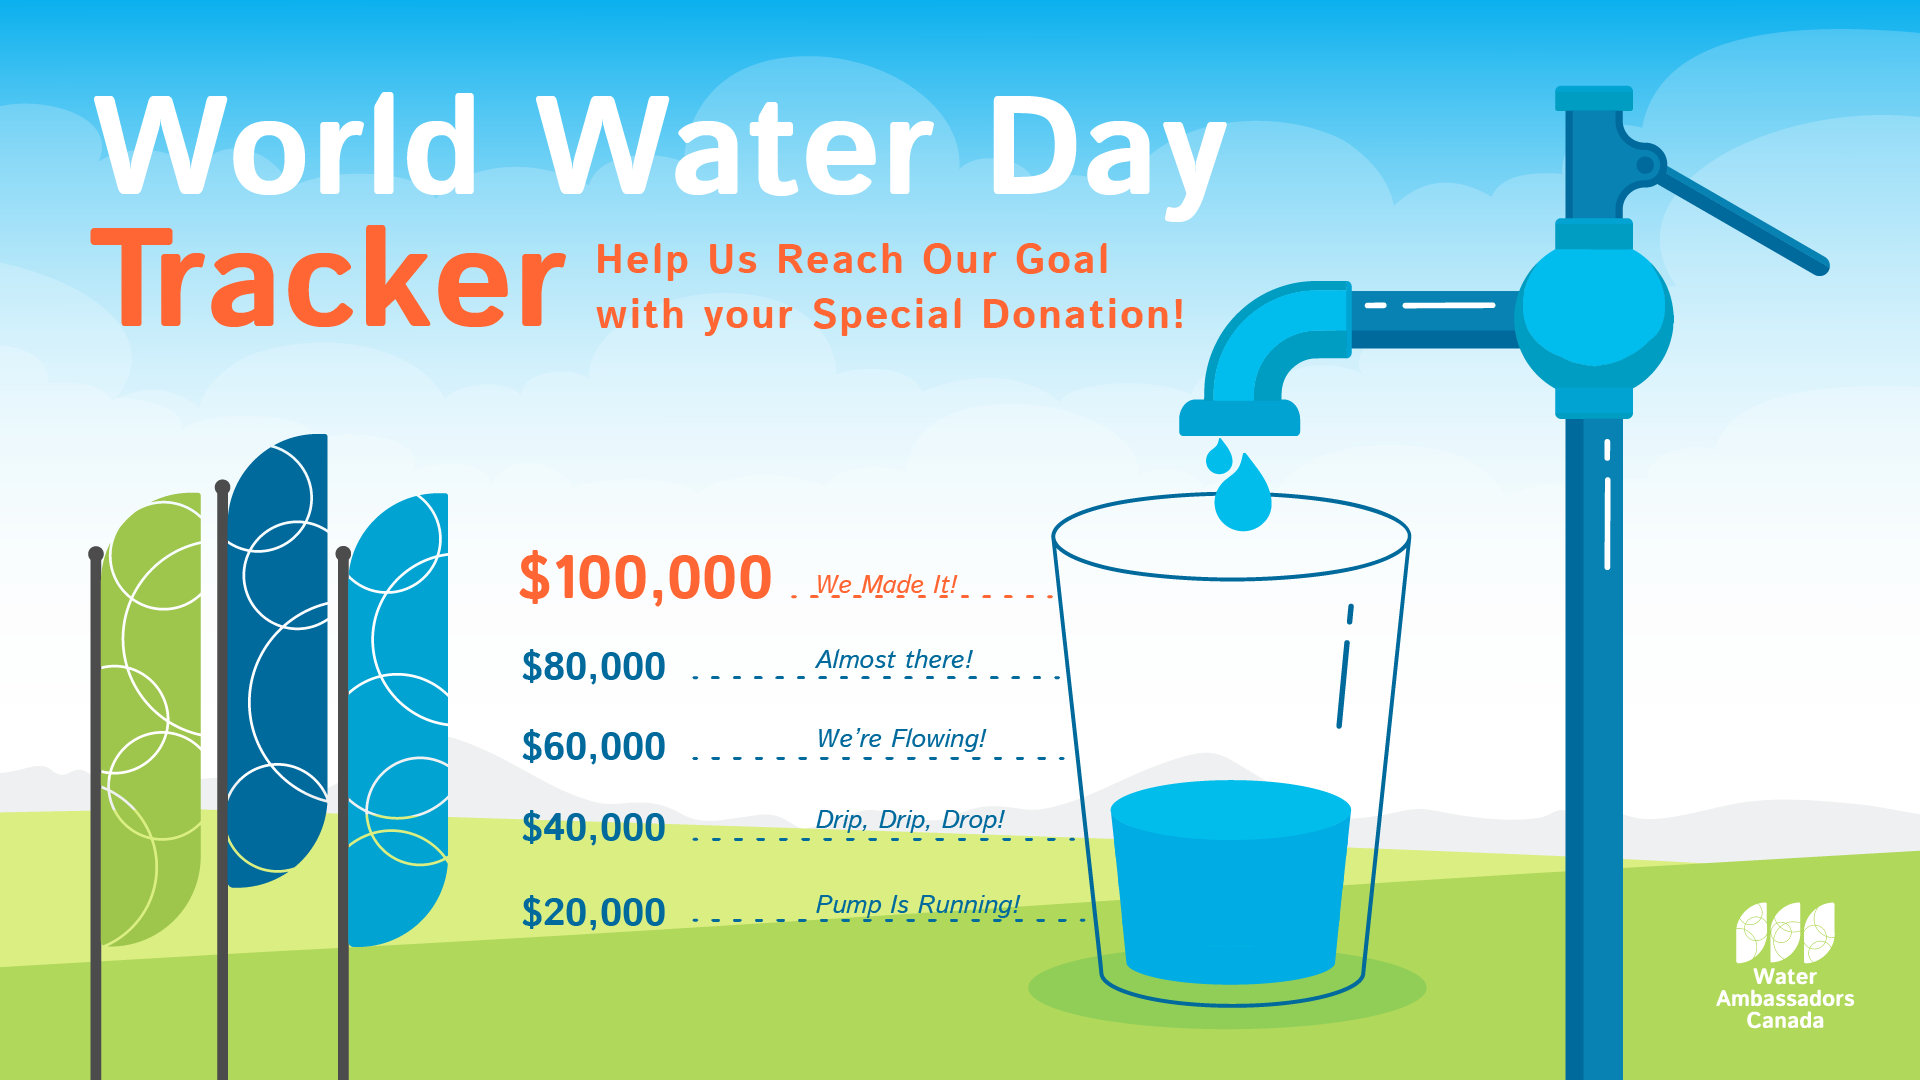 World Water day fundraising goal tracker infographic.